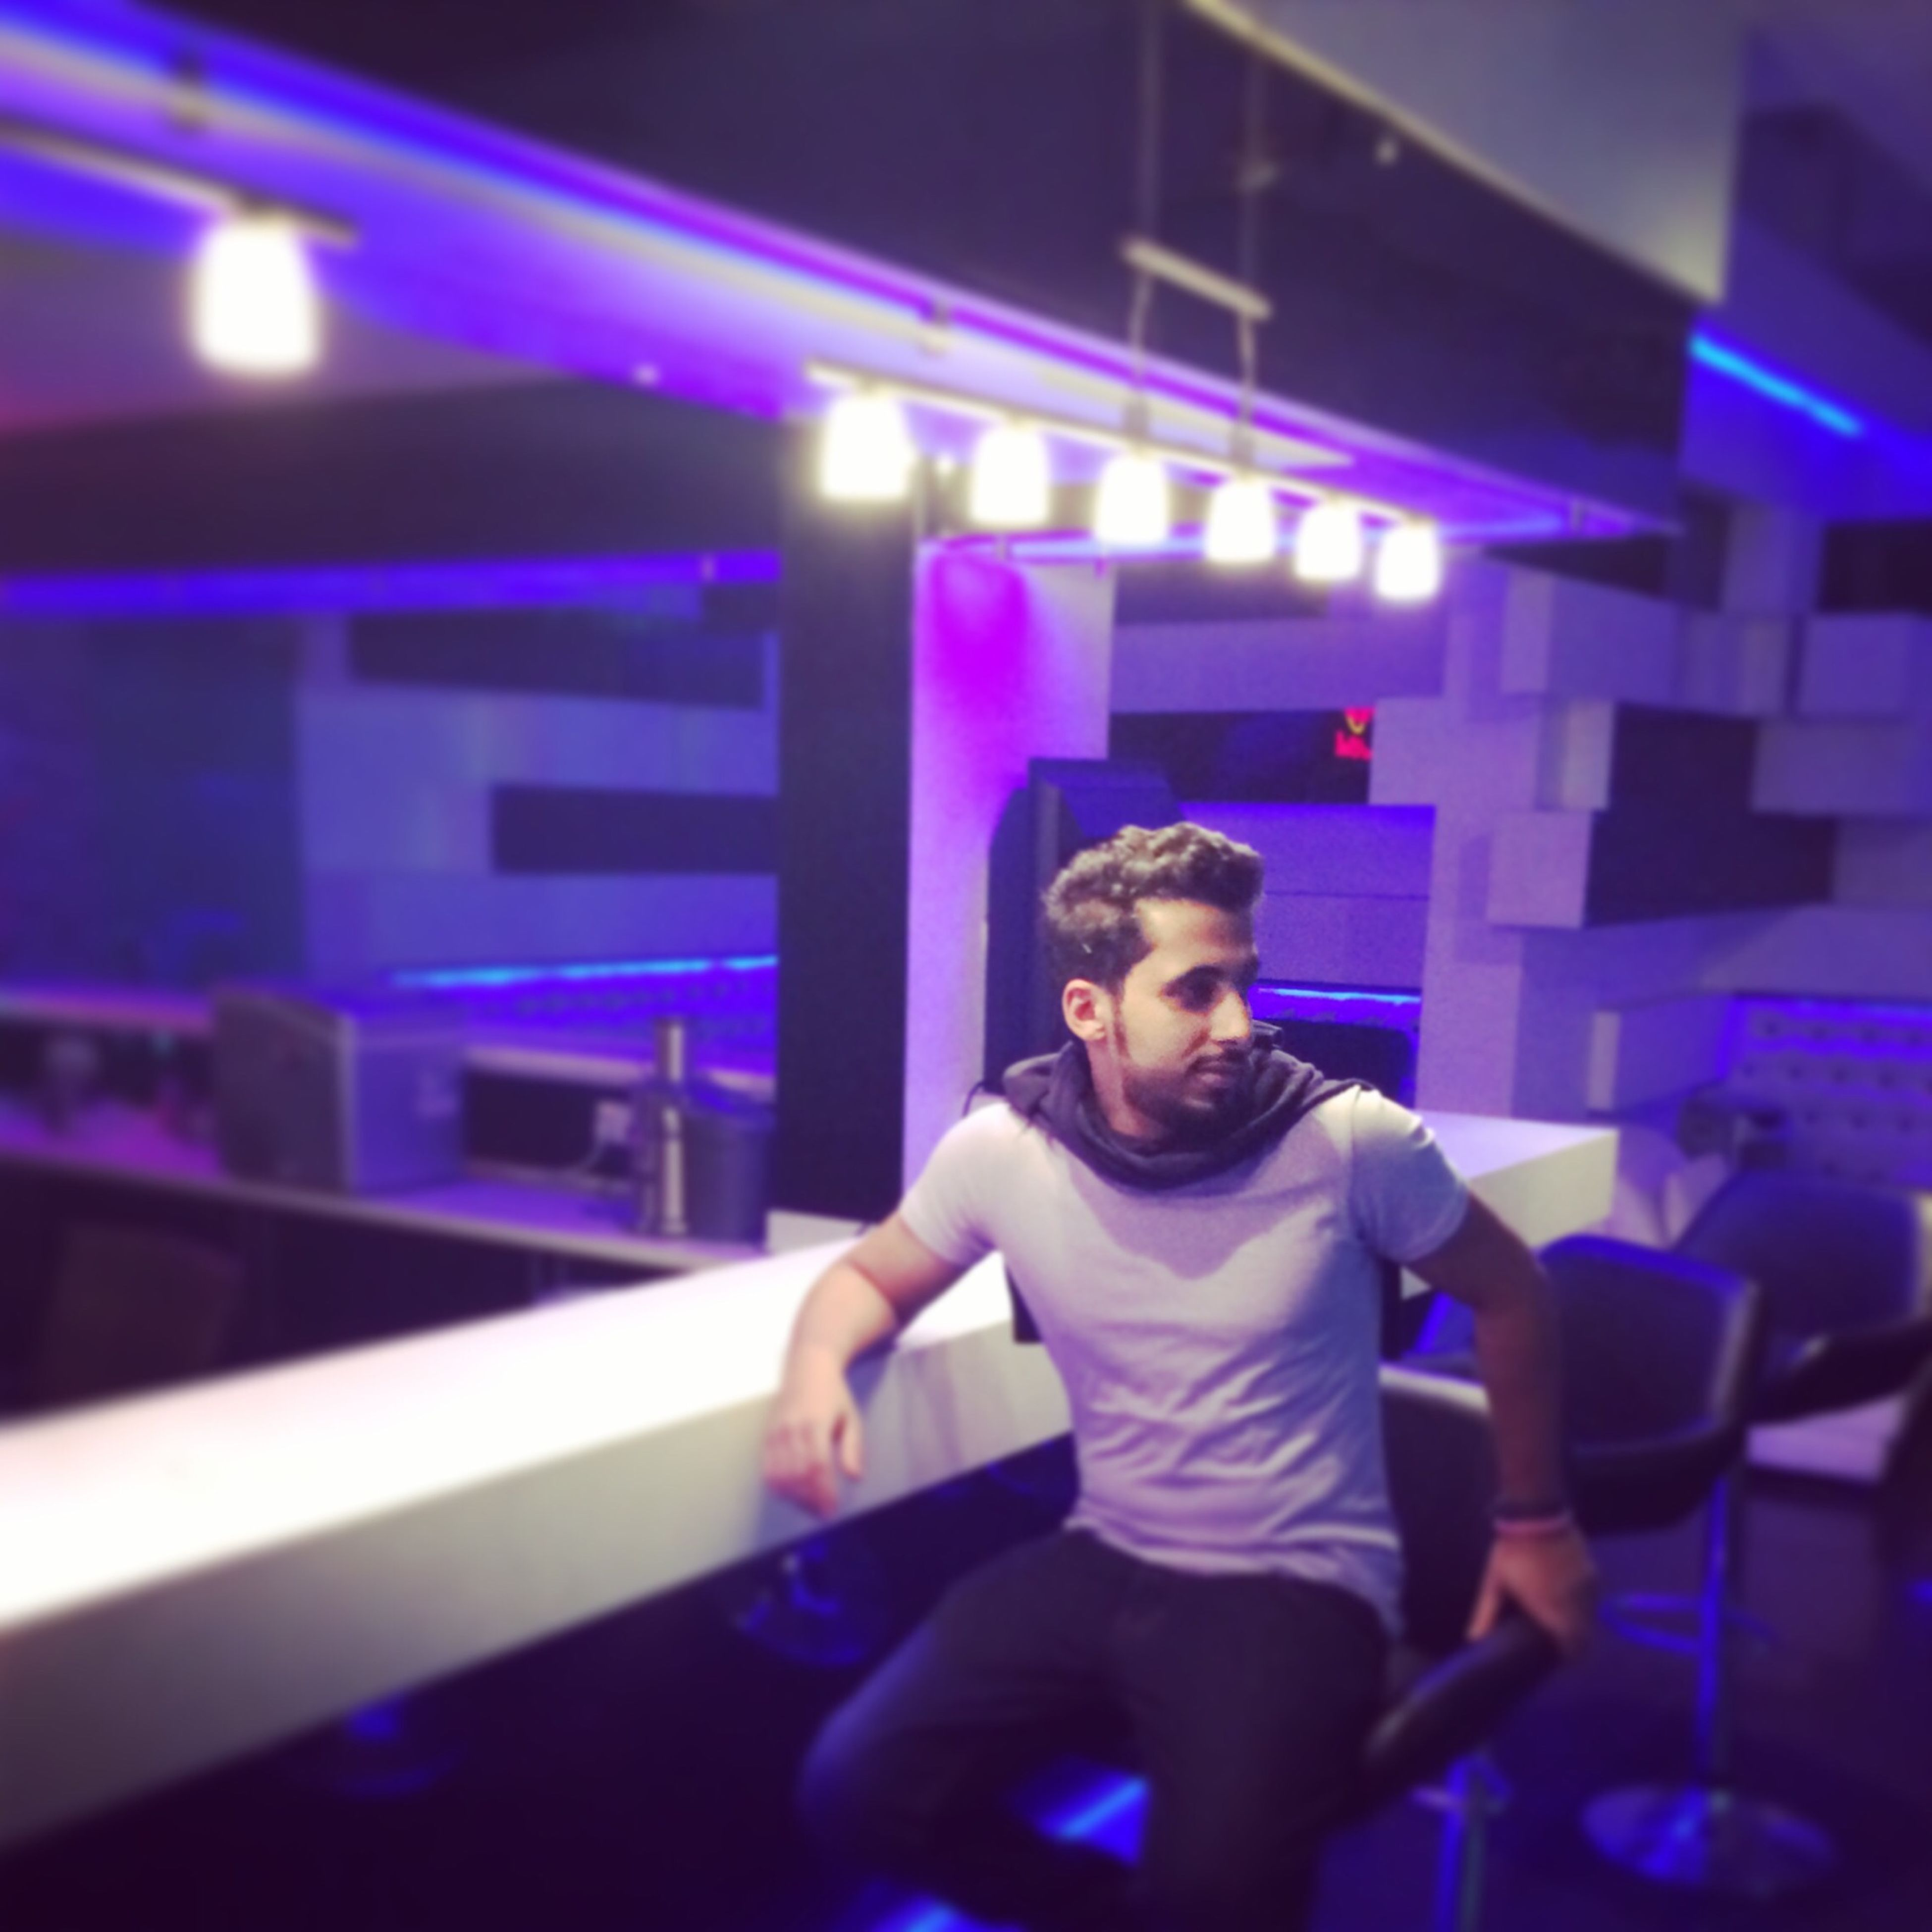 illuminated, indoors, night, lifestyles, leisure activity, lighting equipment, arts culture and entertainment, selective focus, playing, person, music, sitting, casual clothing, focus on foreground, front view, blue, light - natural phenomenon, childhood